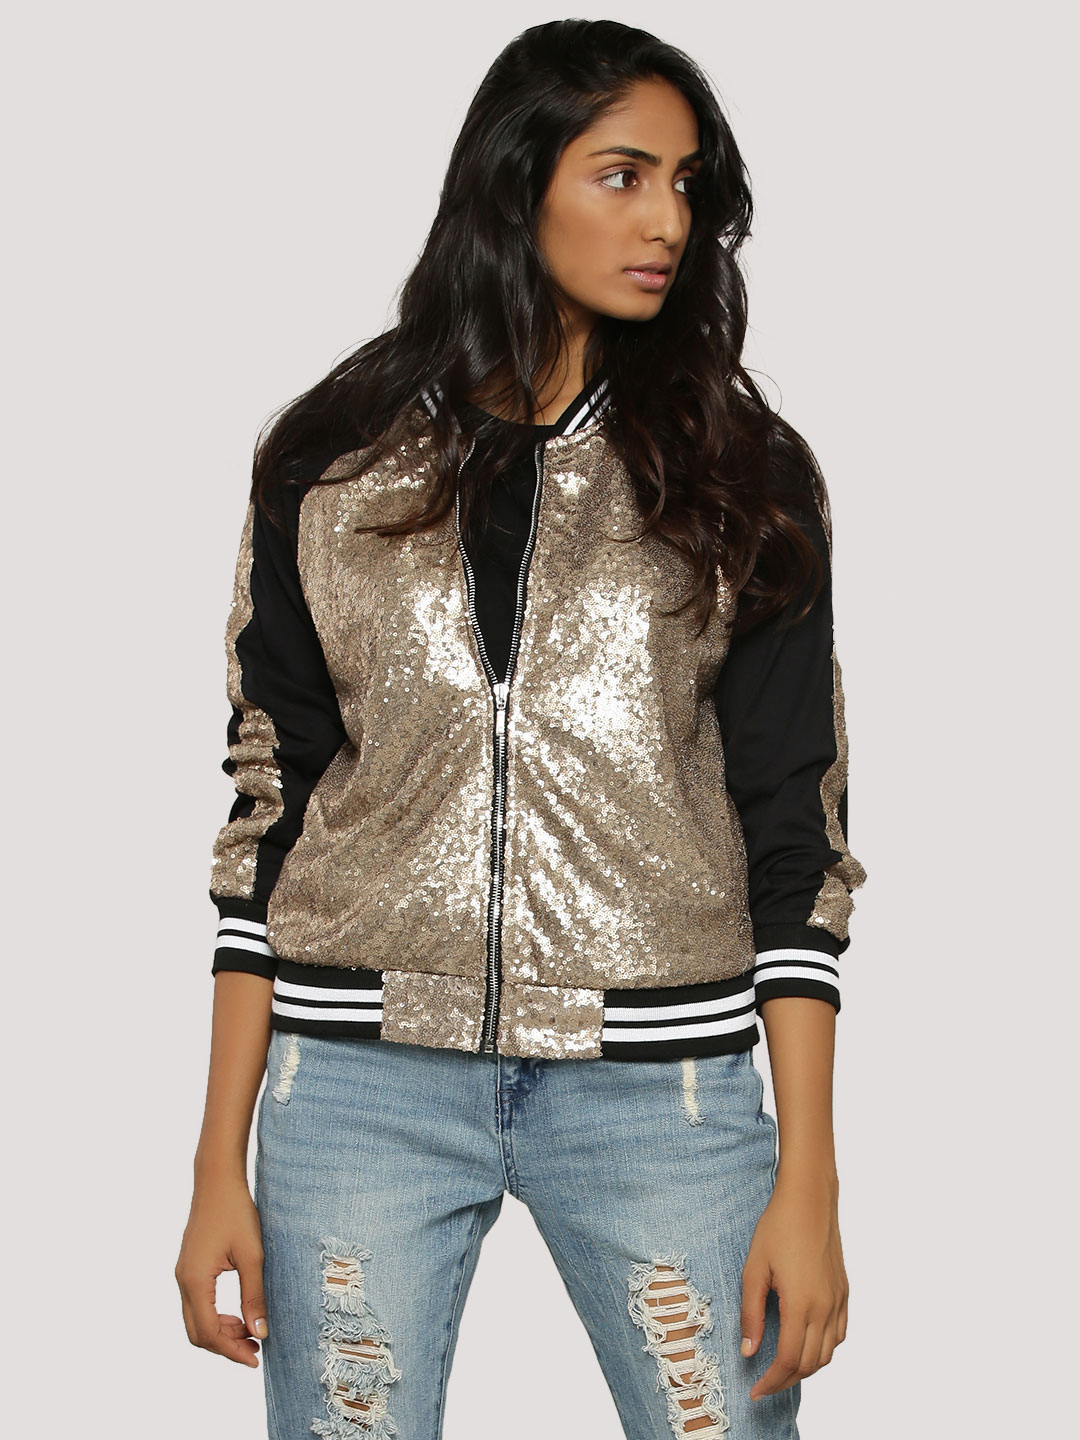 Spring Break Gold & Black Sequins Bomber Jacket 1